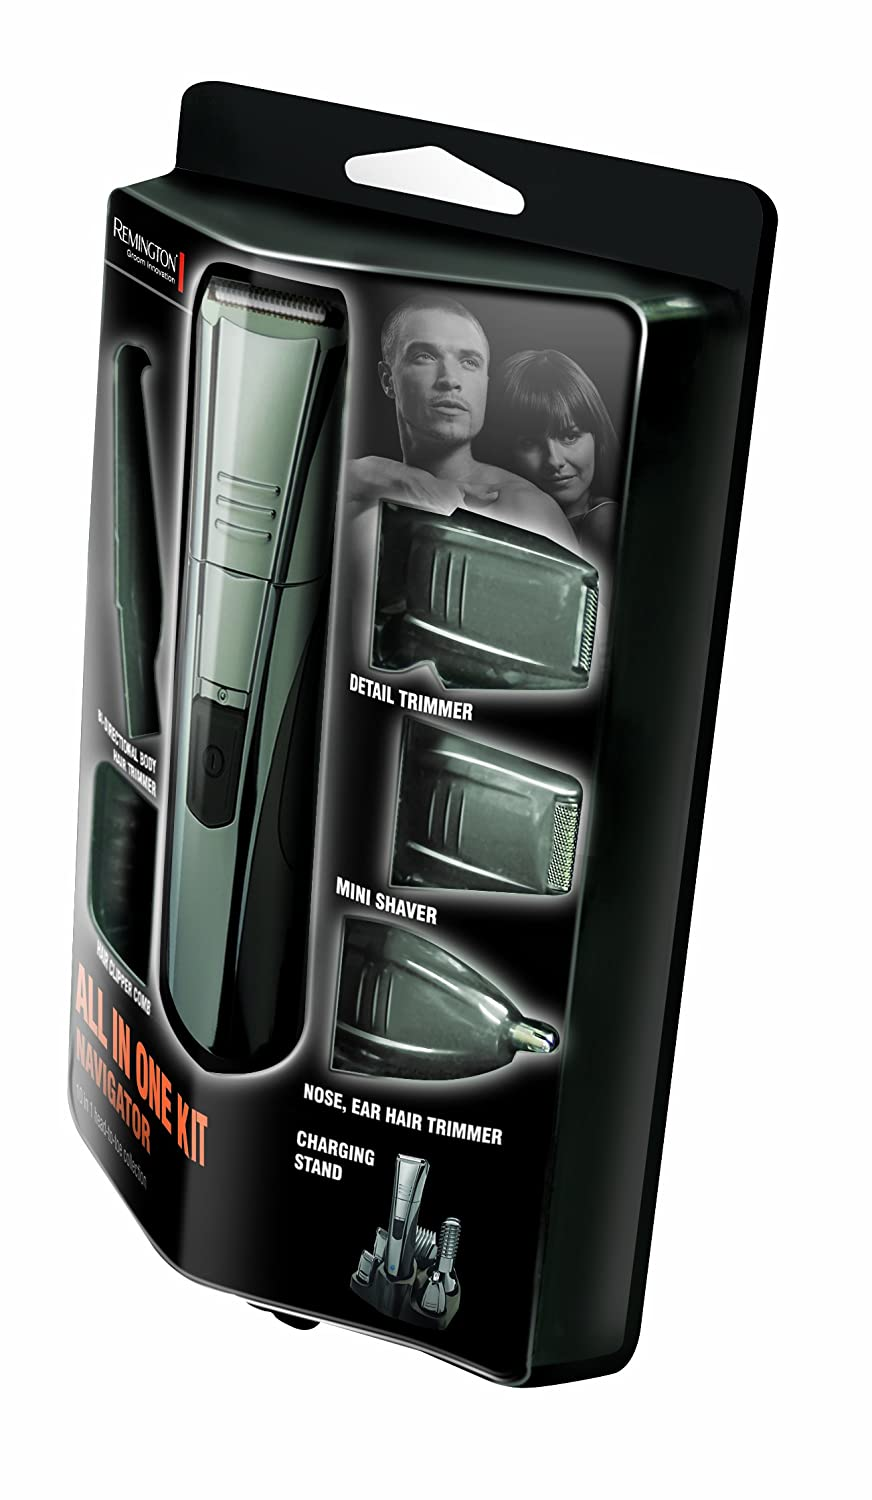 remington pg520 navigator all in 1 grooming kit hair beard clippers ebay. Black Bedroom Furniture Sets. Home Design Ideas